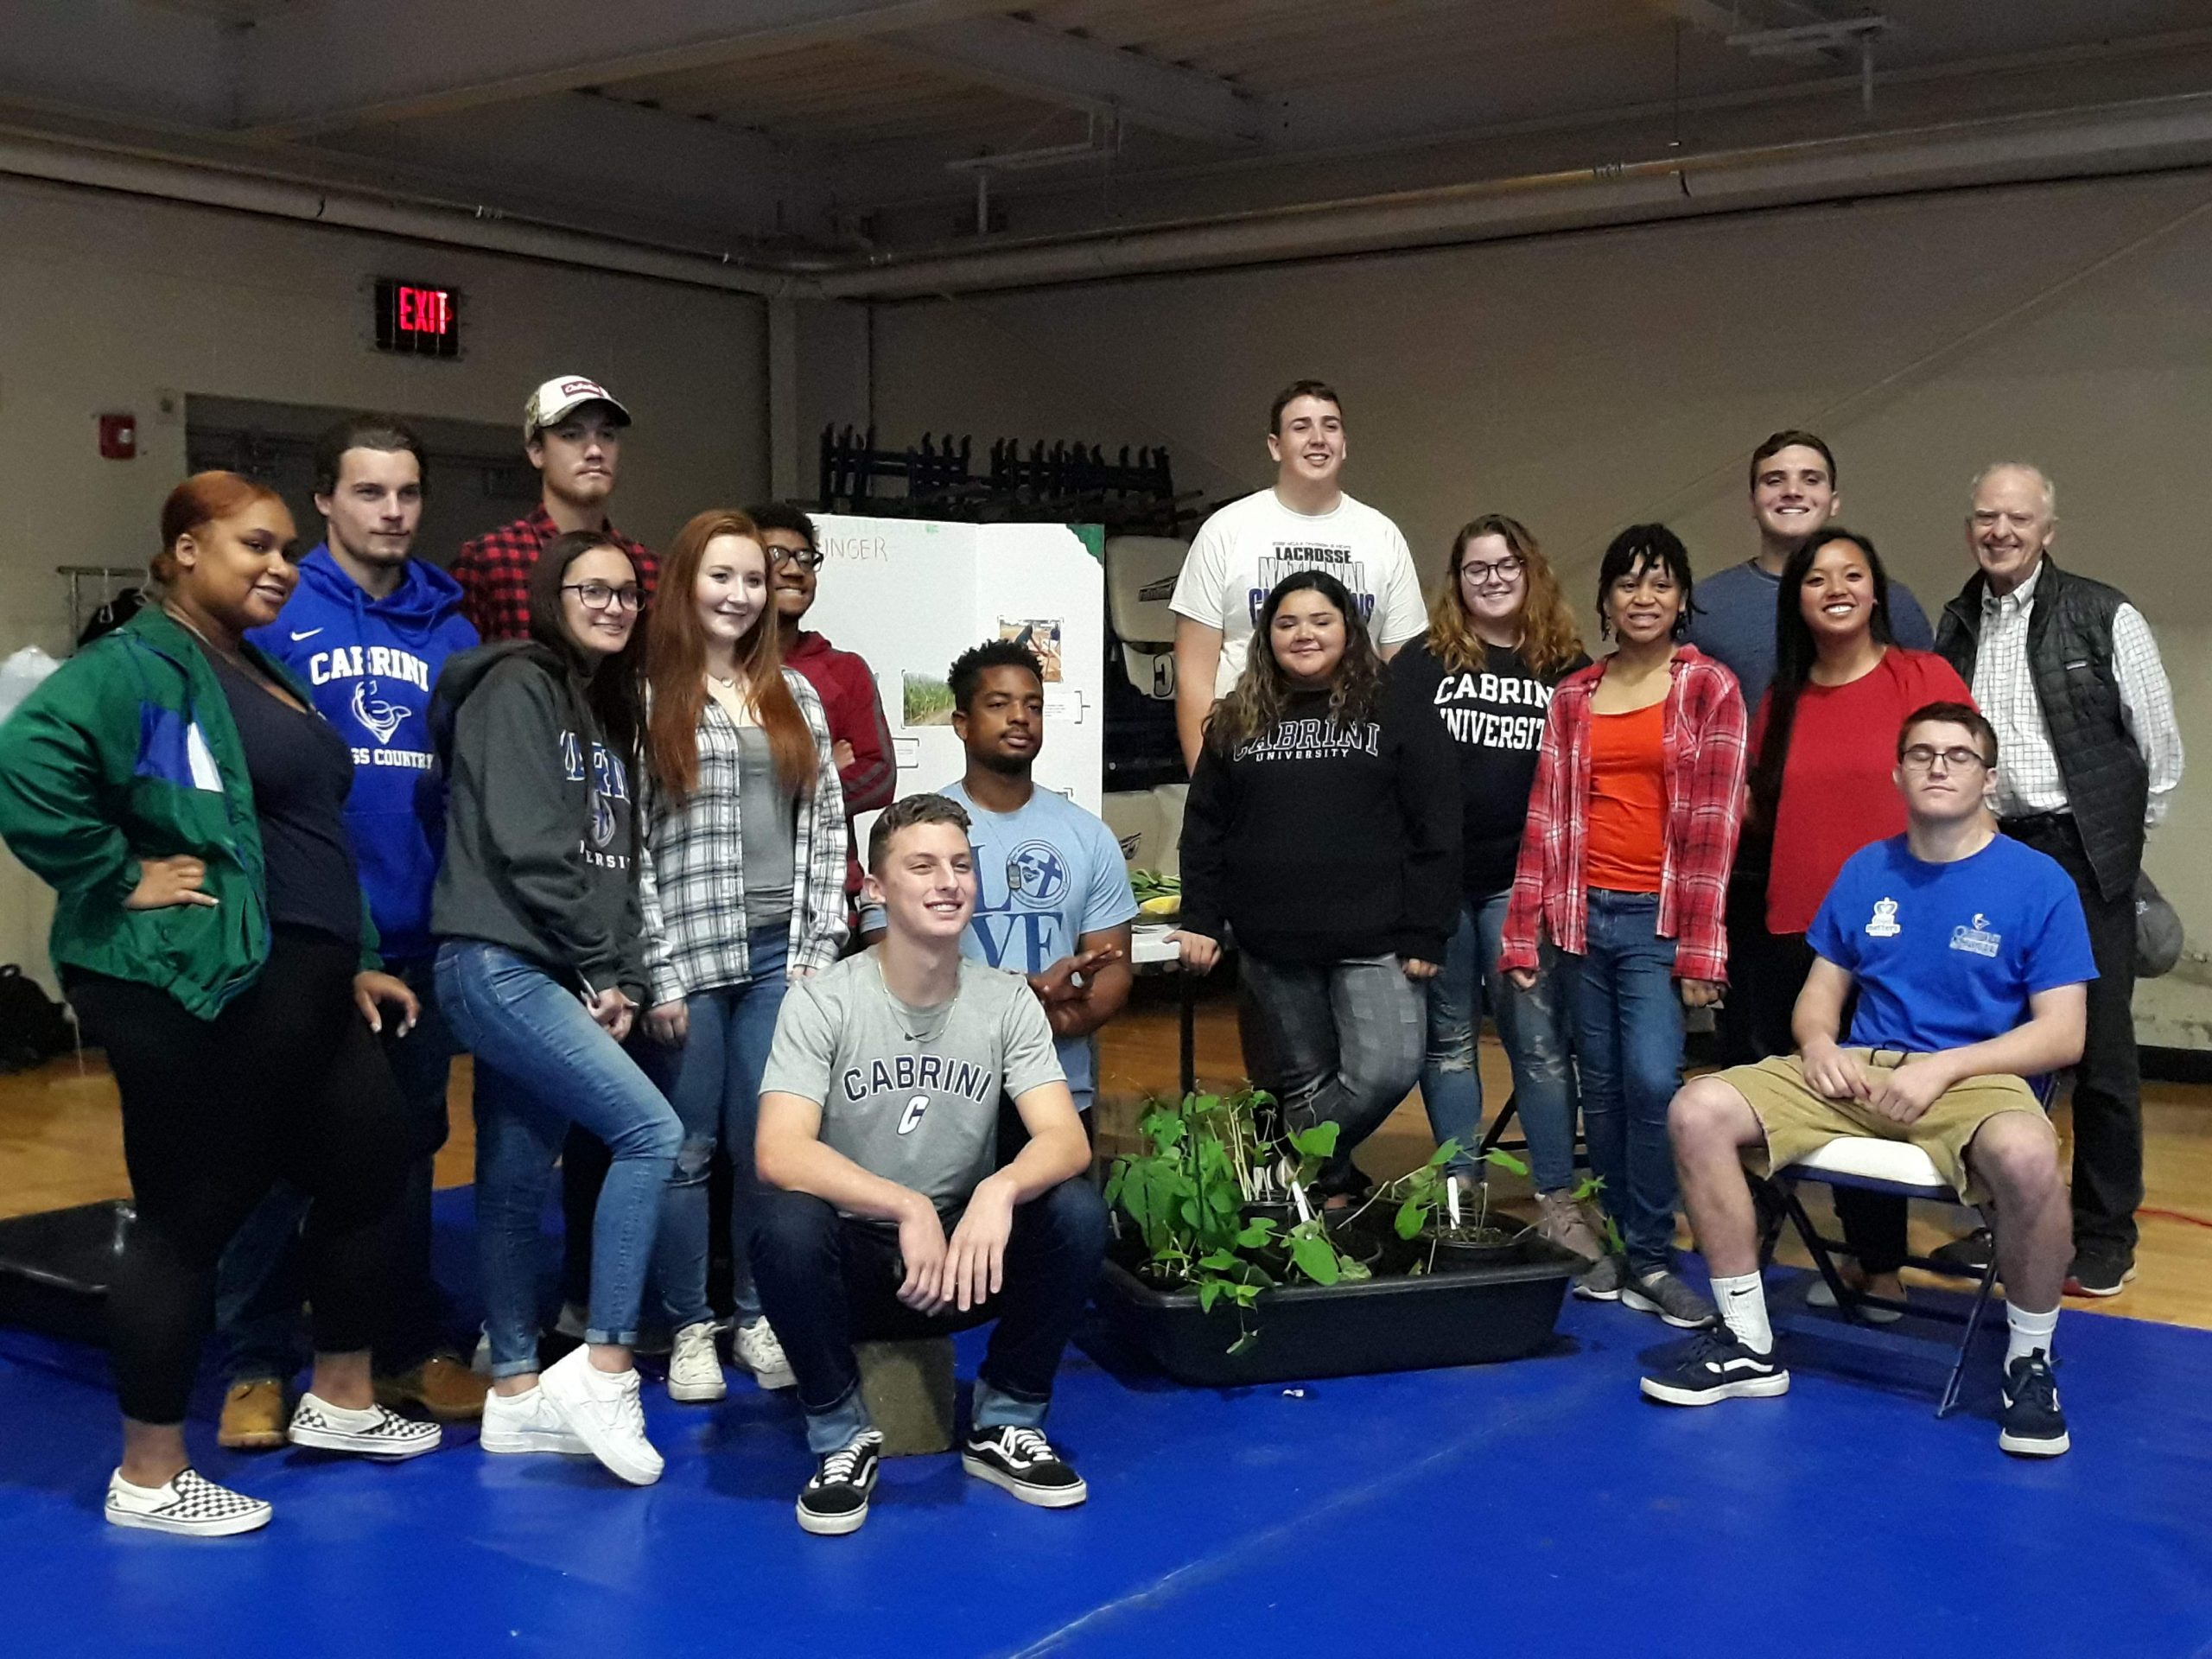 Cabrini students advocate for those in global poverty on Cabrini Day